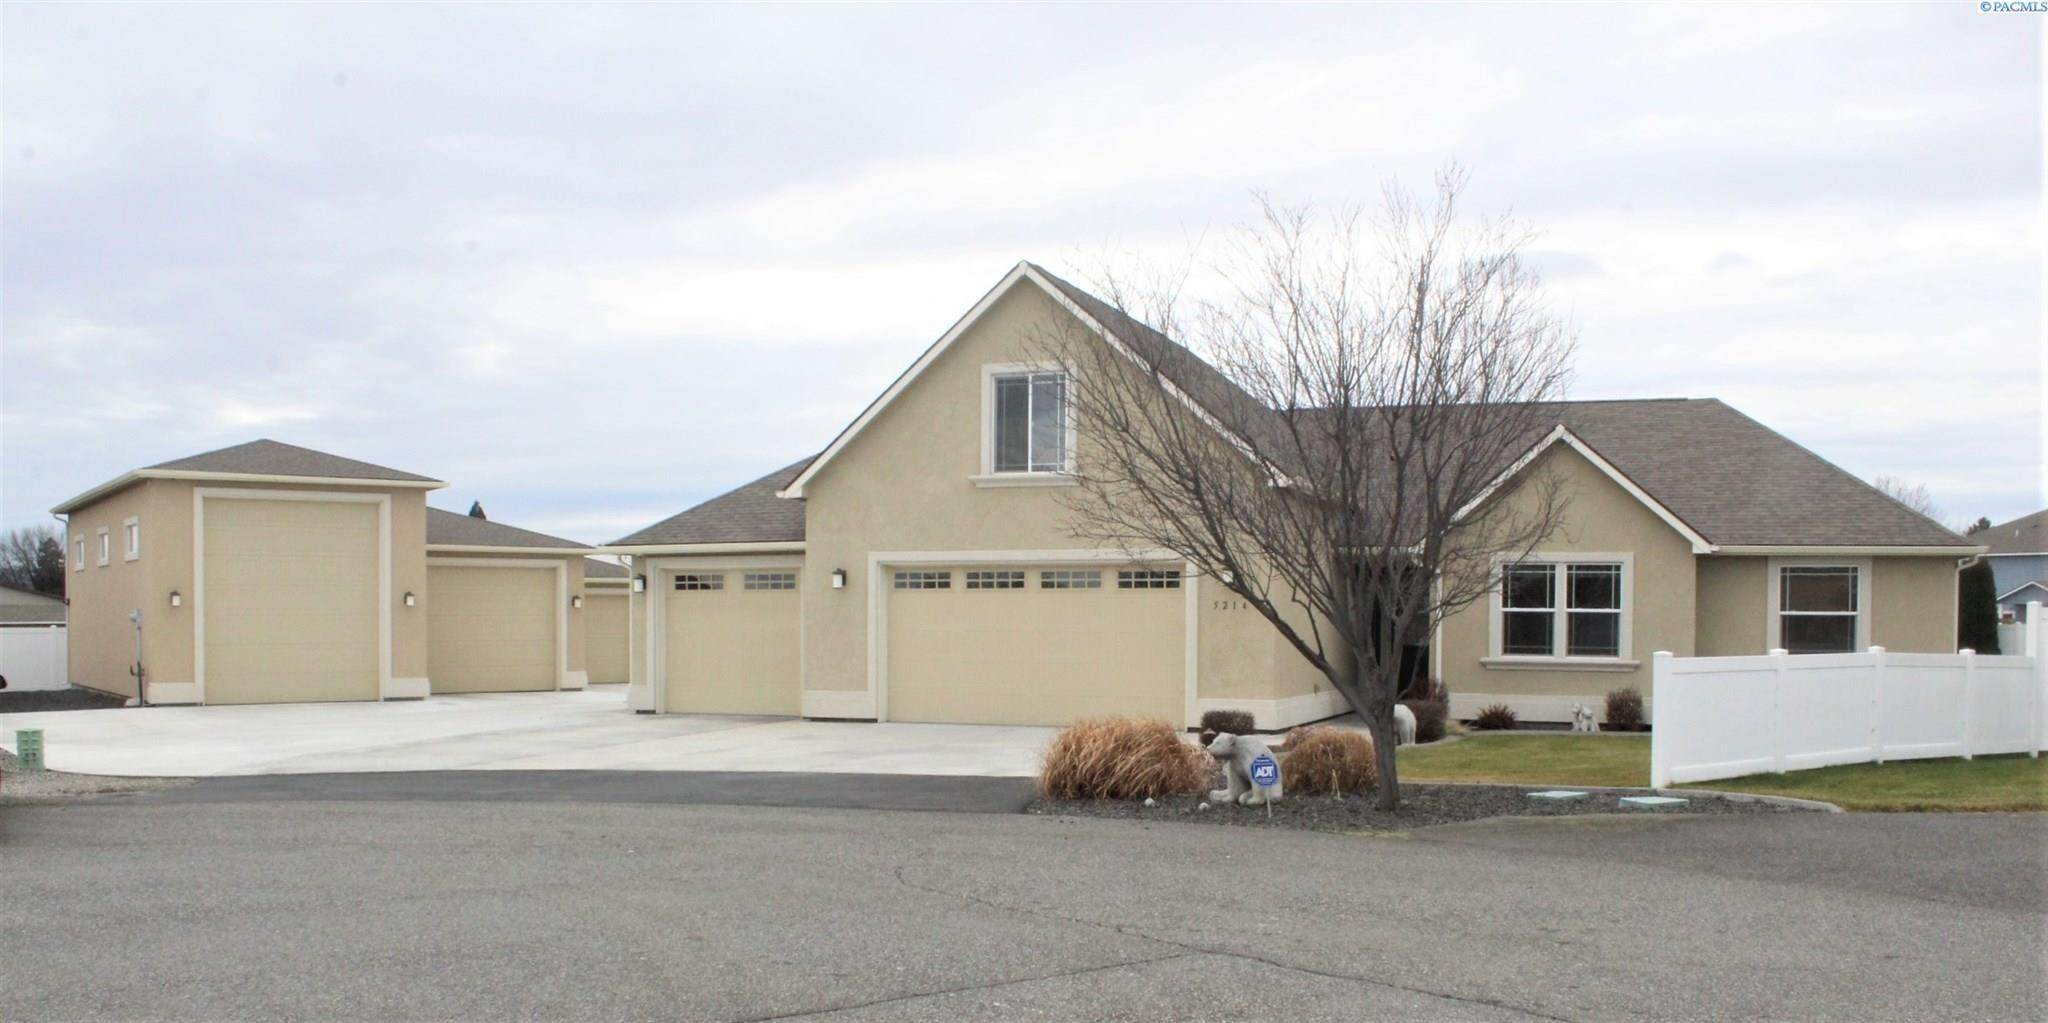 Single Family Homes for Sale at 5214 Snowcrest Drive Pasco, Washington 99301 United States